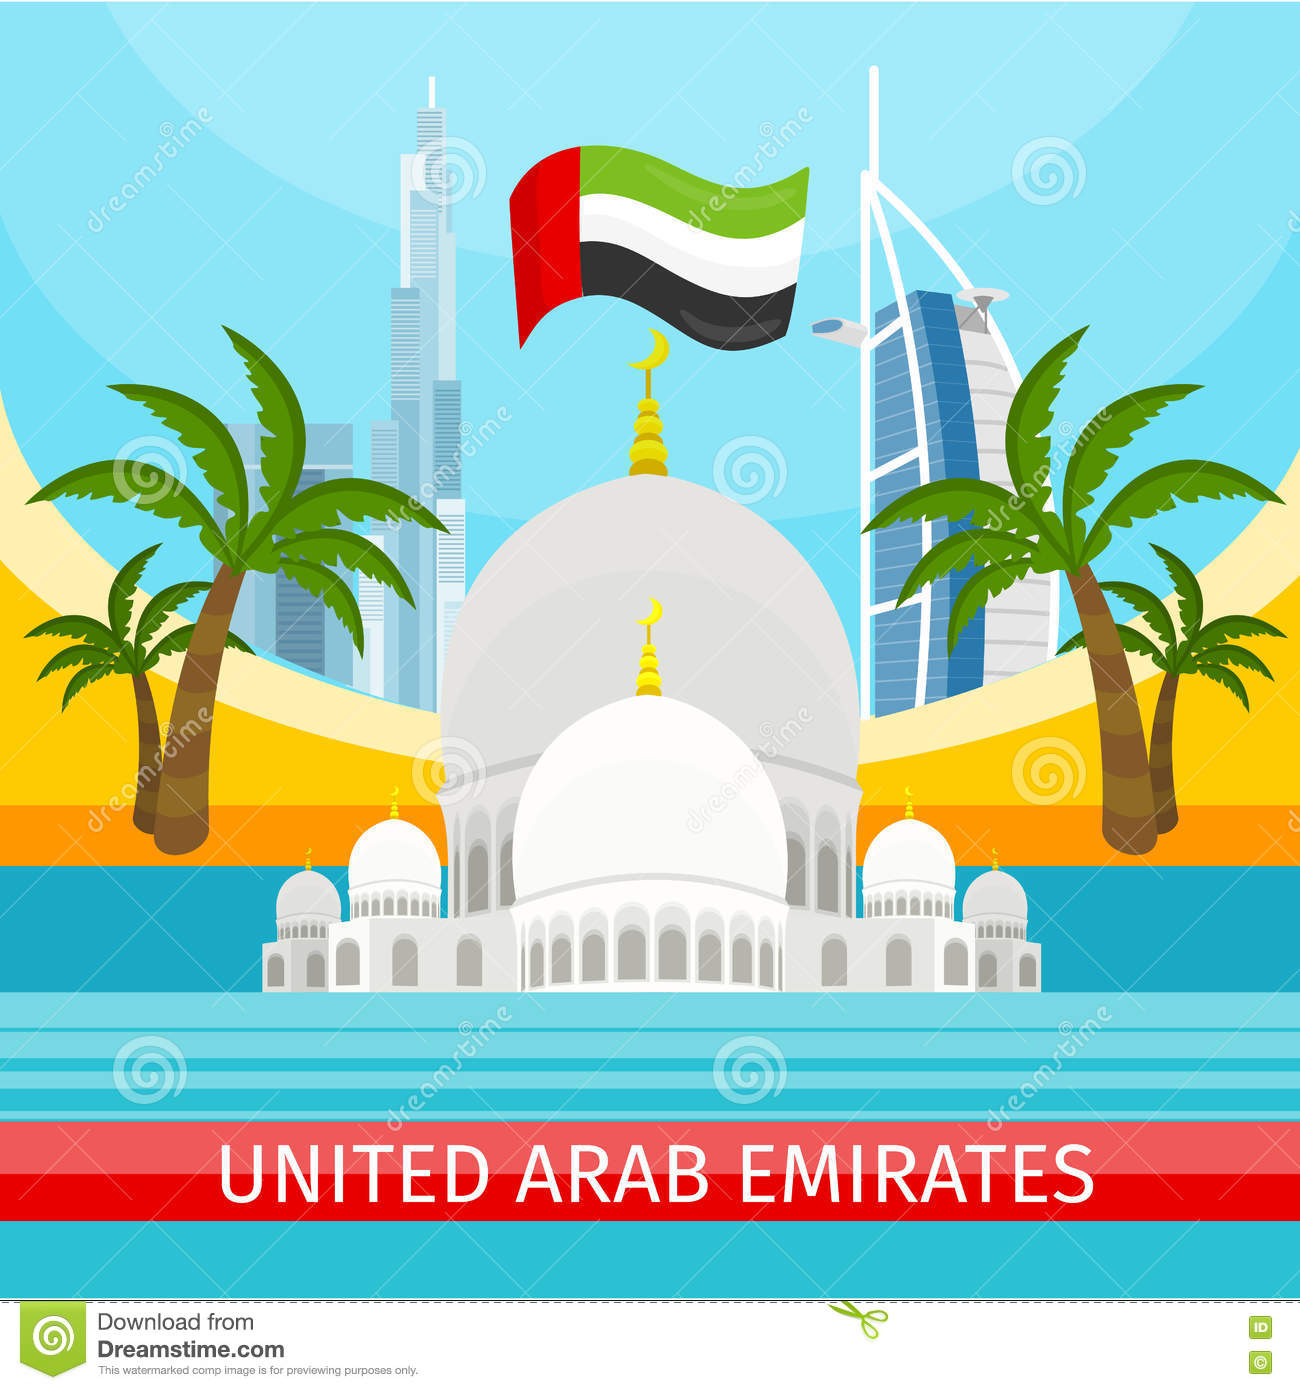 united arab of emirates essay The united arab emirates (uae) labor market consists largely of expatriates rather than nationals, the vast majority of which are employed in the private sector on the other hand, nationals are mostly employed in the public sector and face growing unemployment pressures.